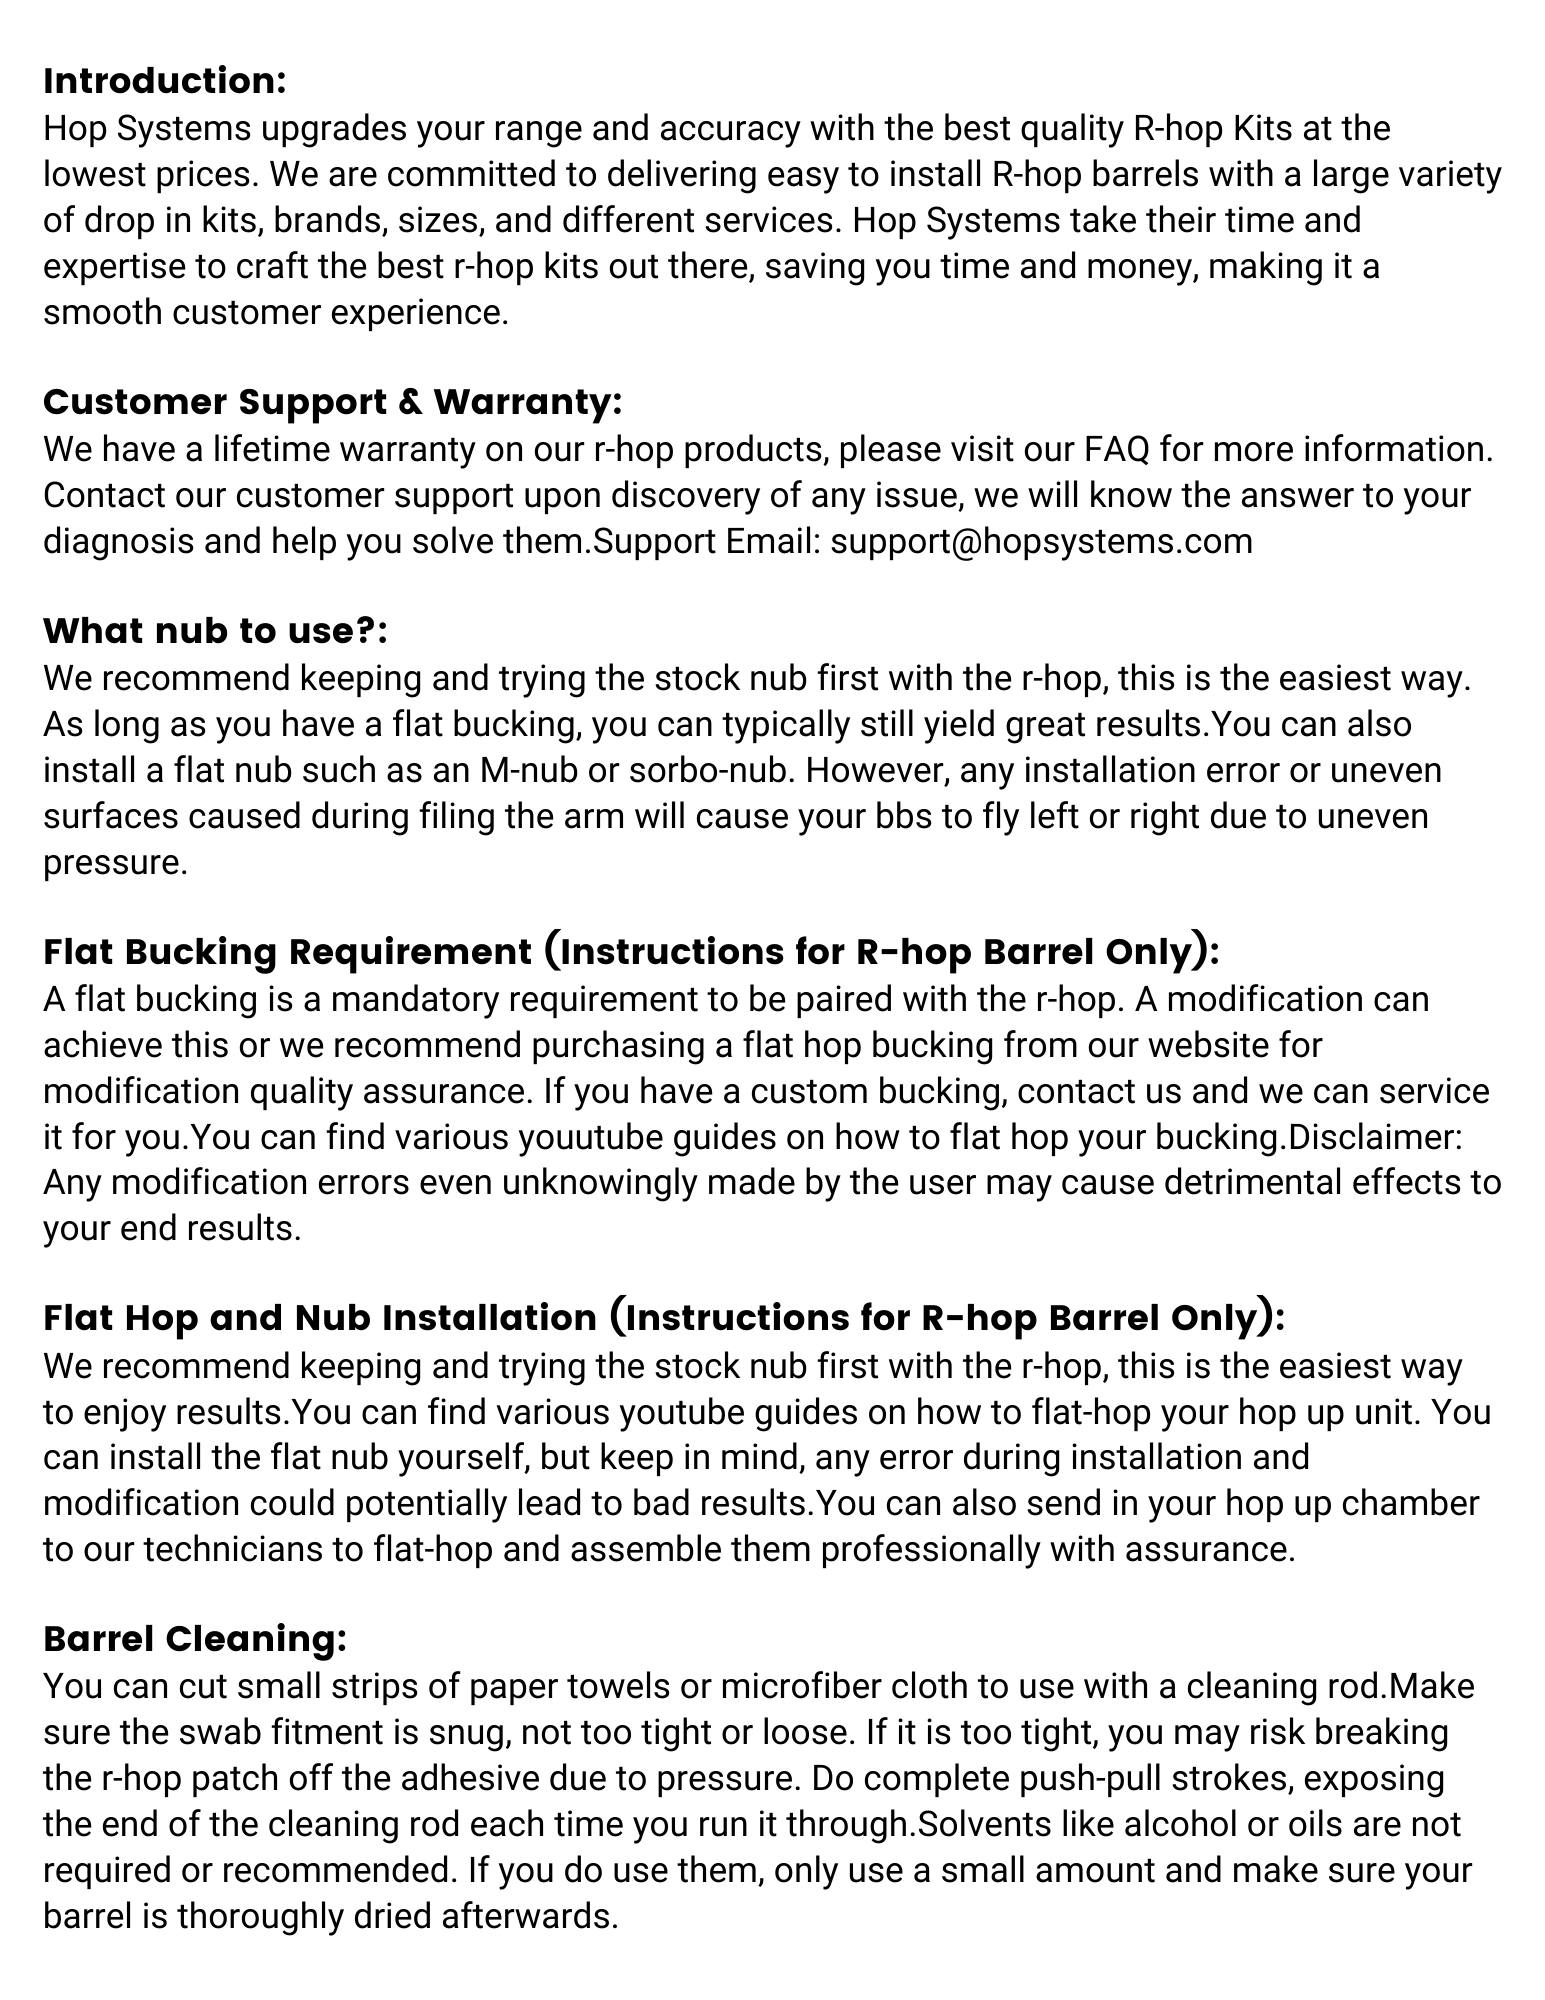 hop systems r-hop manual page 2